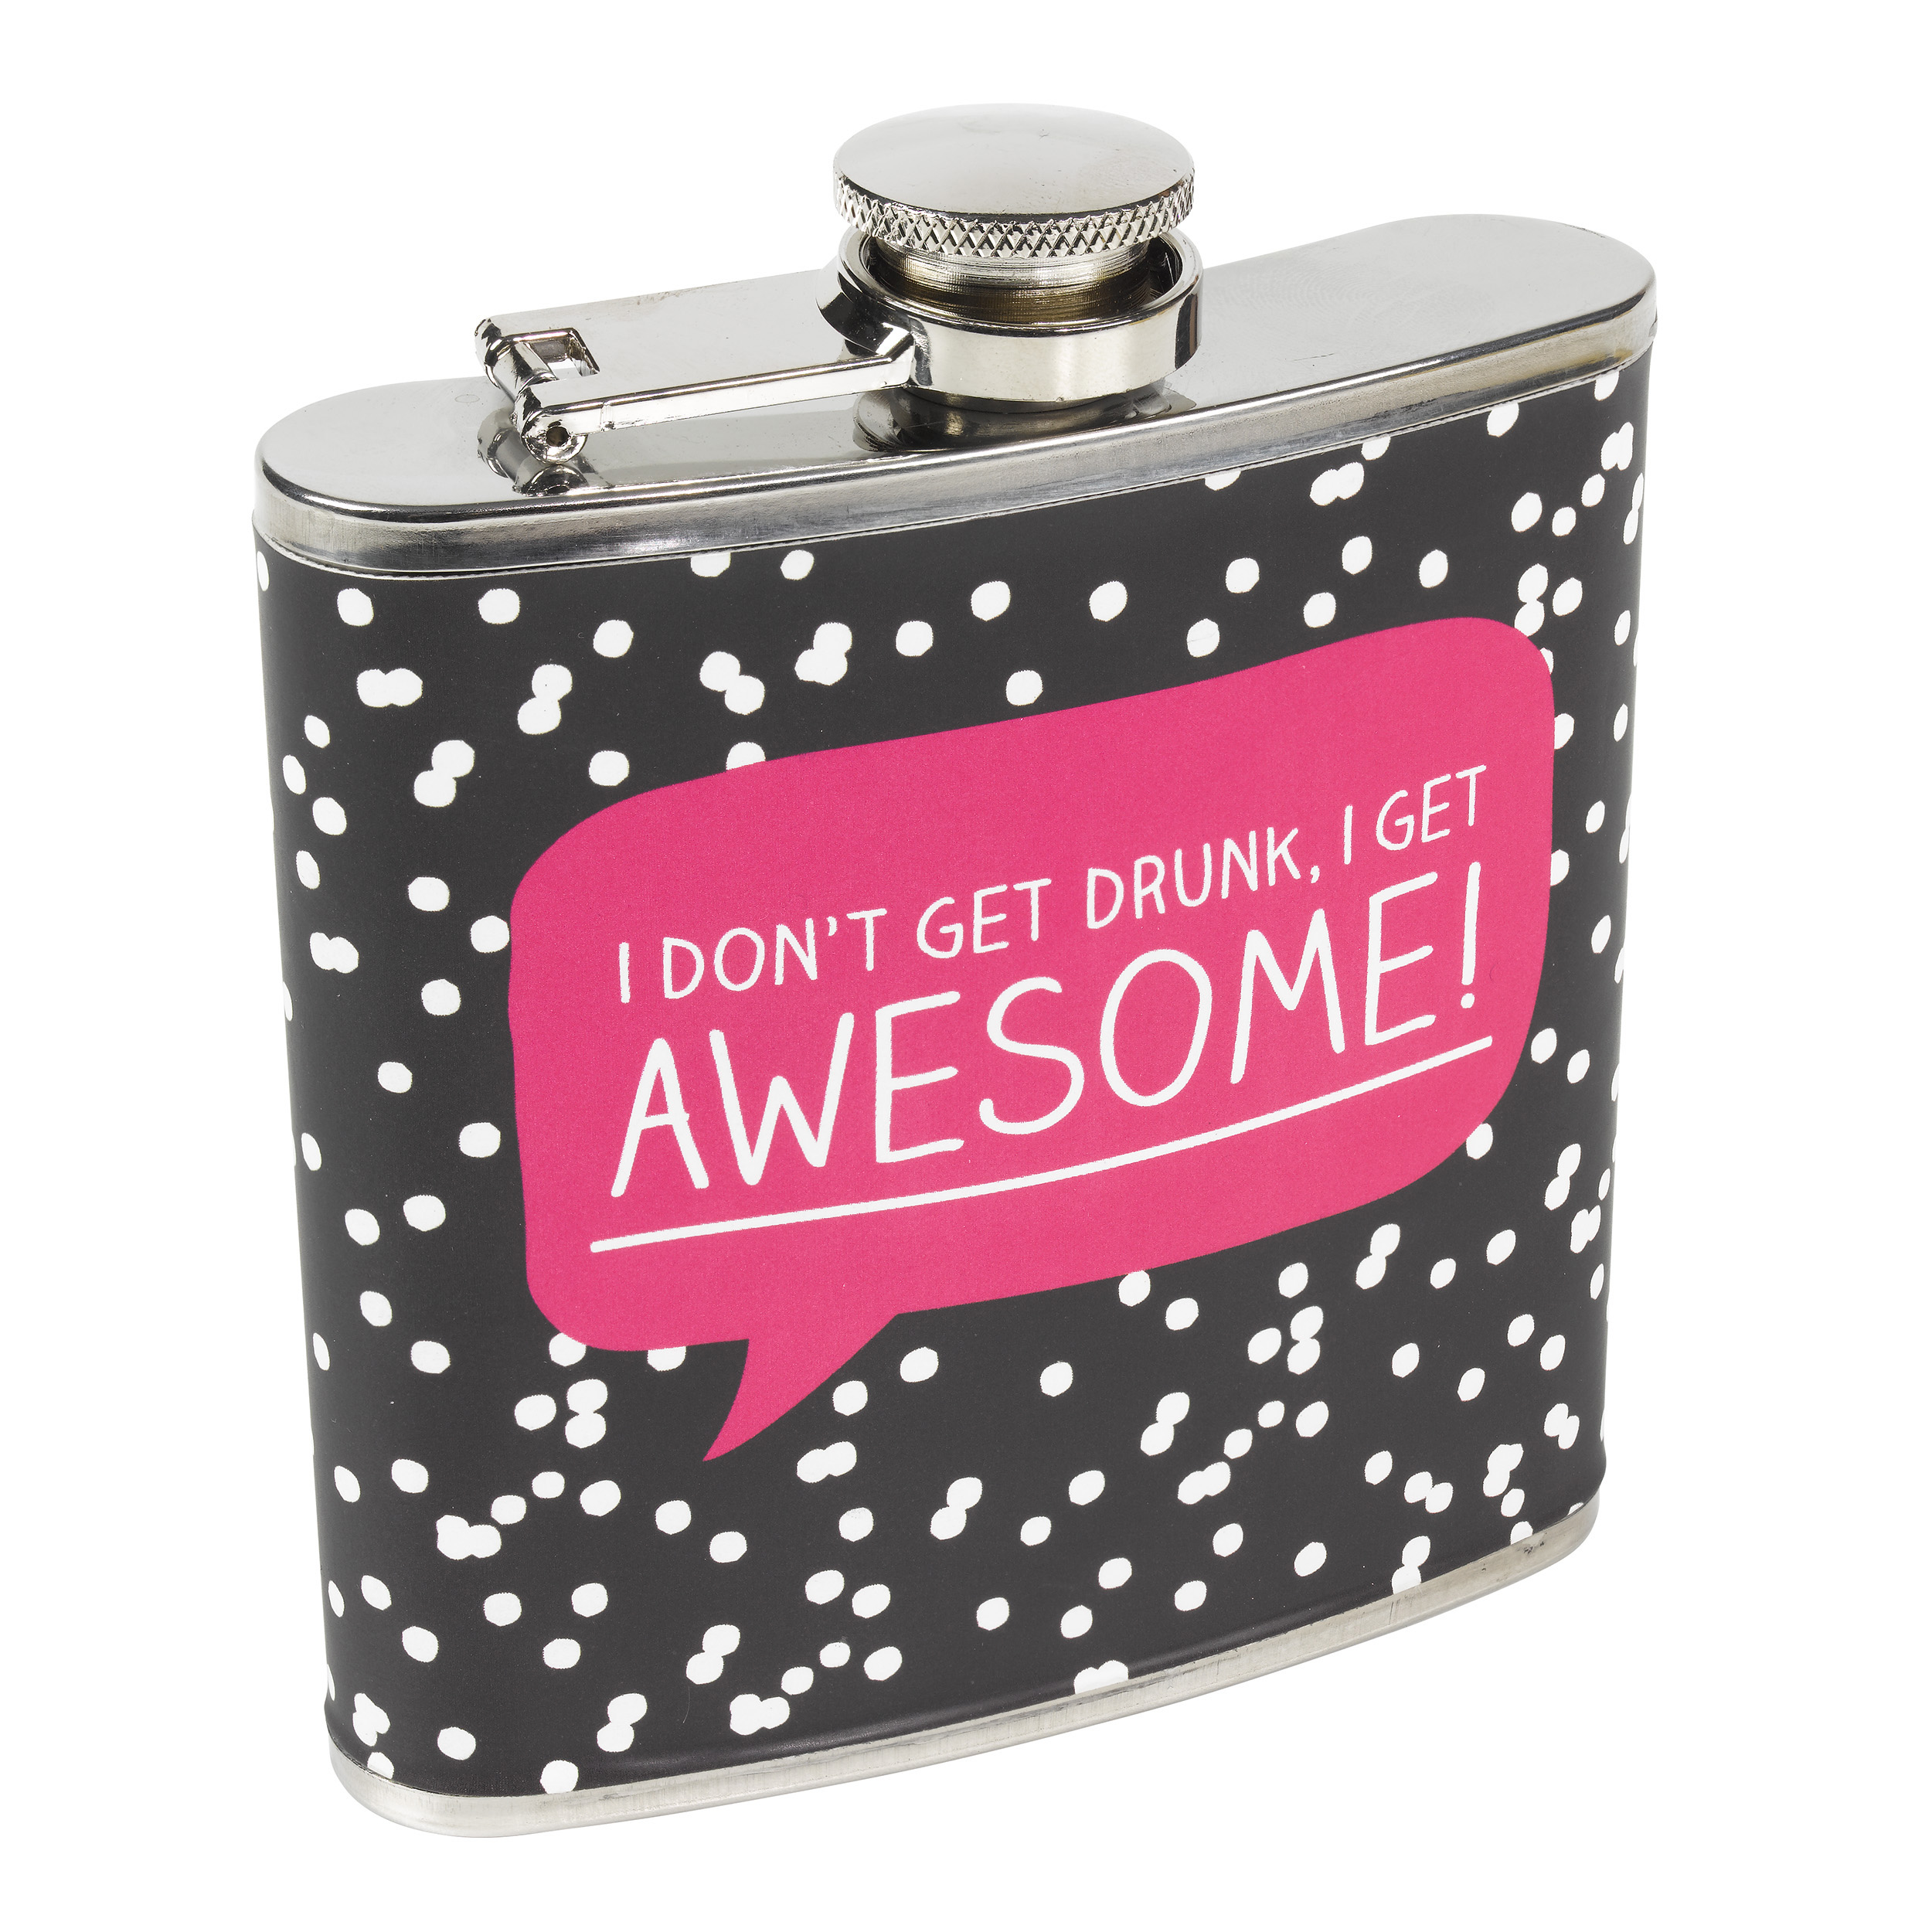 Awesome' Hip Flask